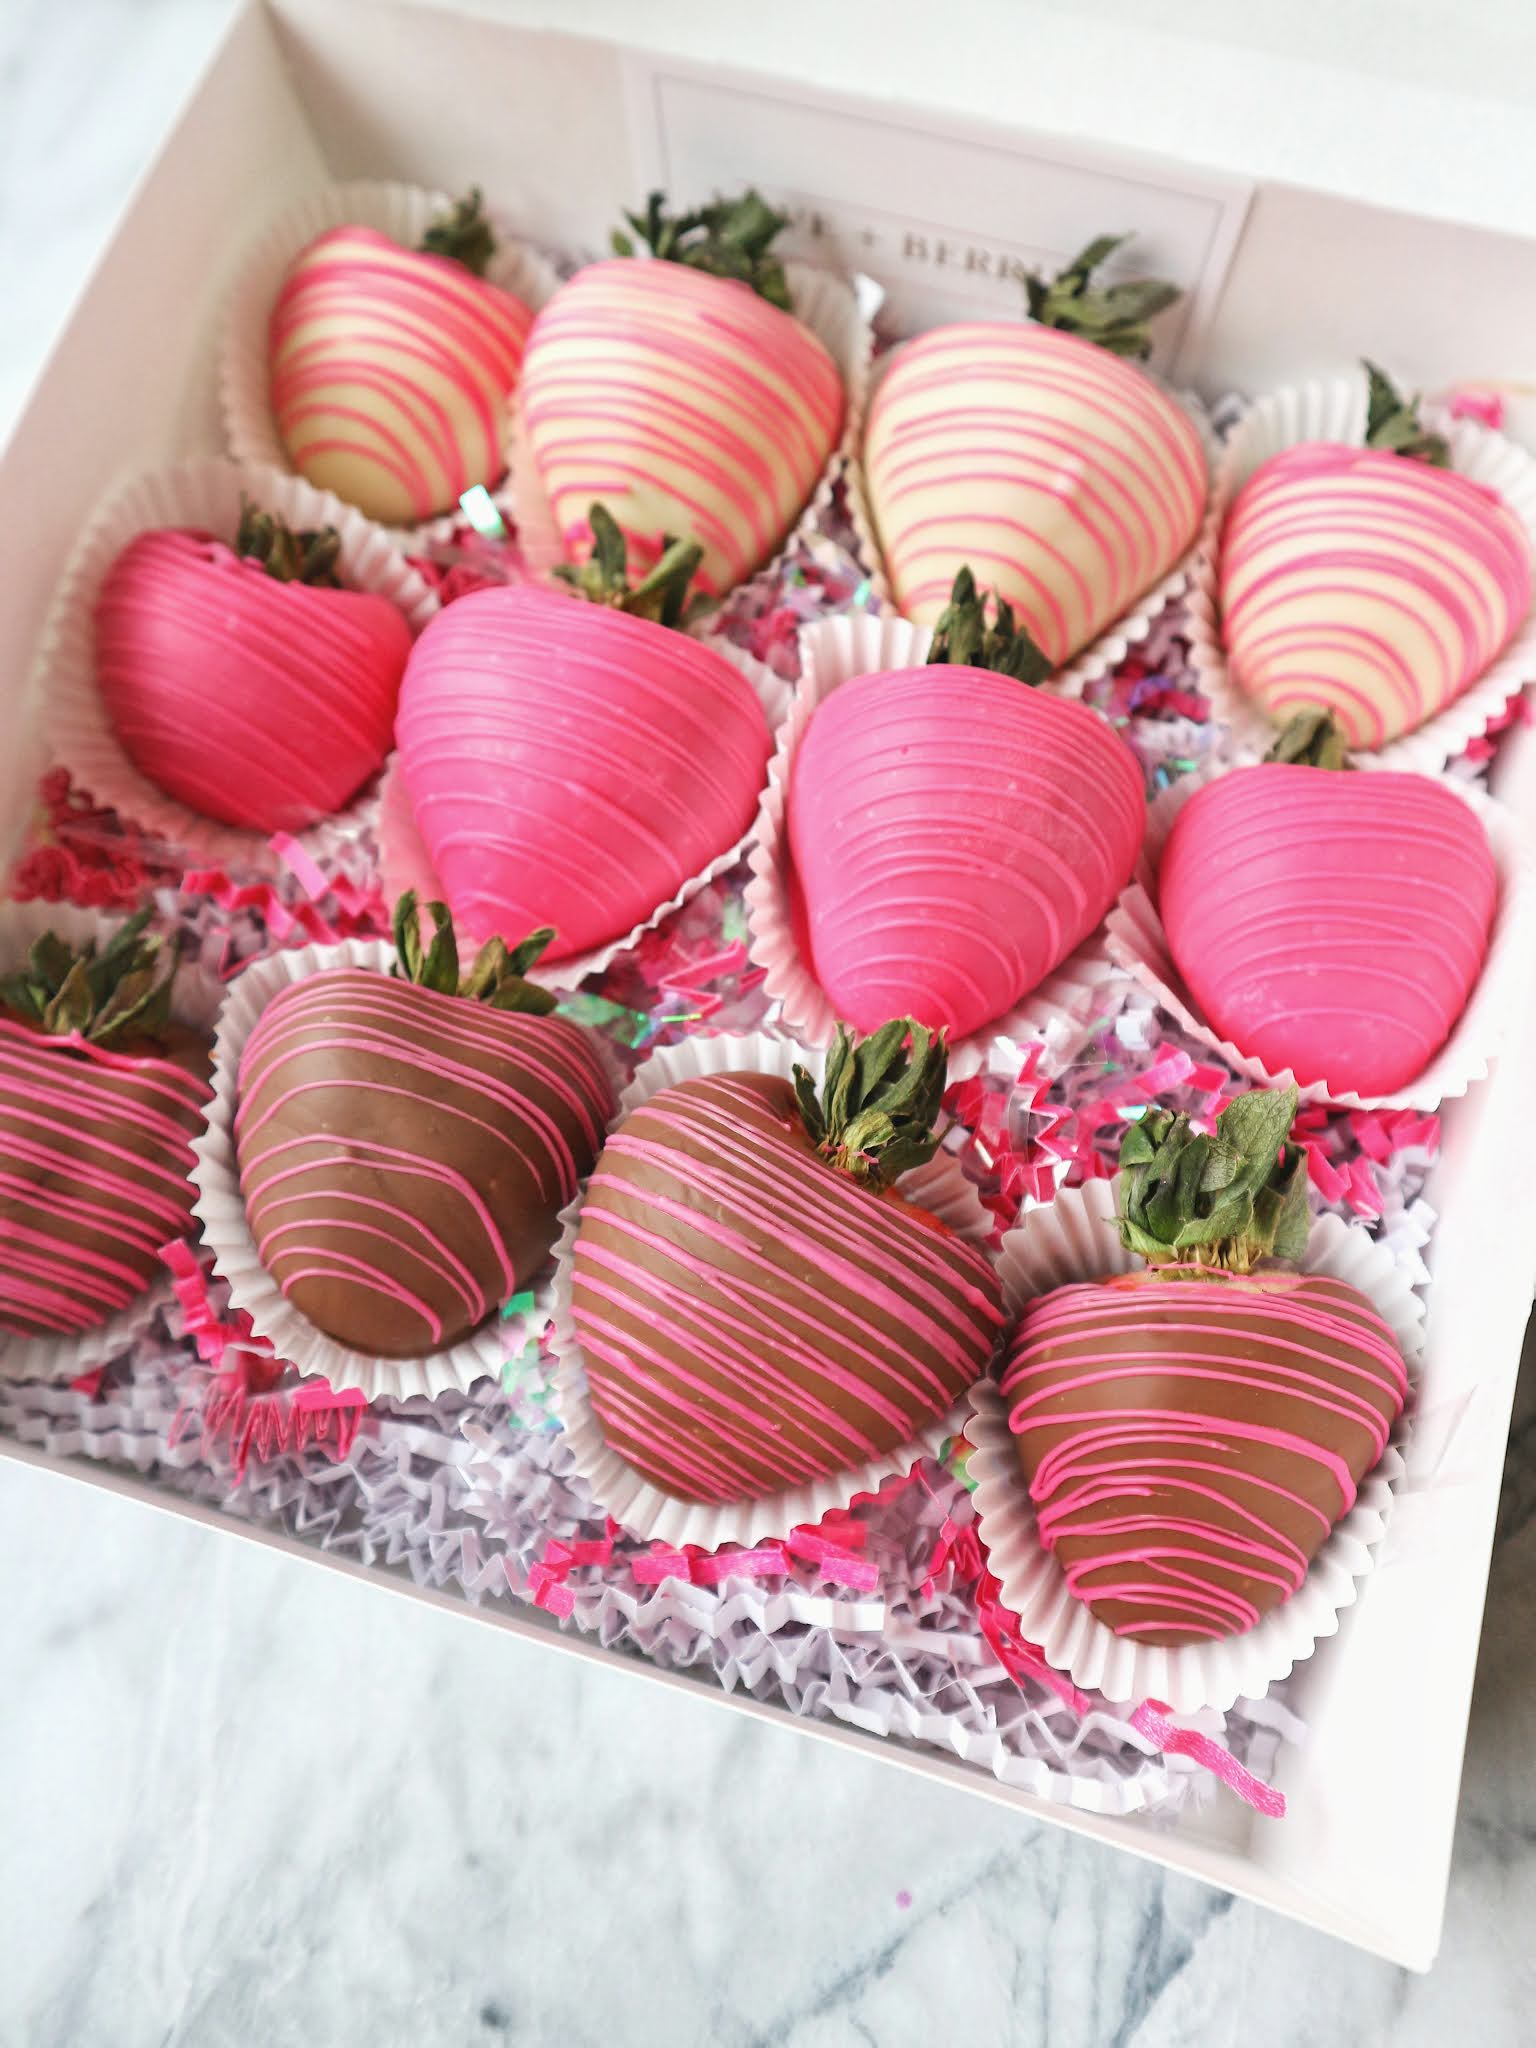 chocolate covered strawberries, kingston holiday foodie gift guide